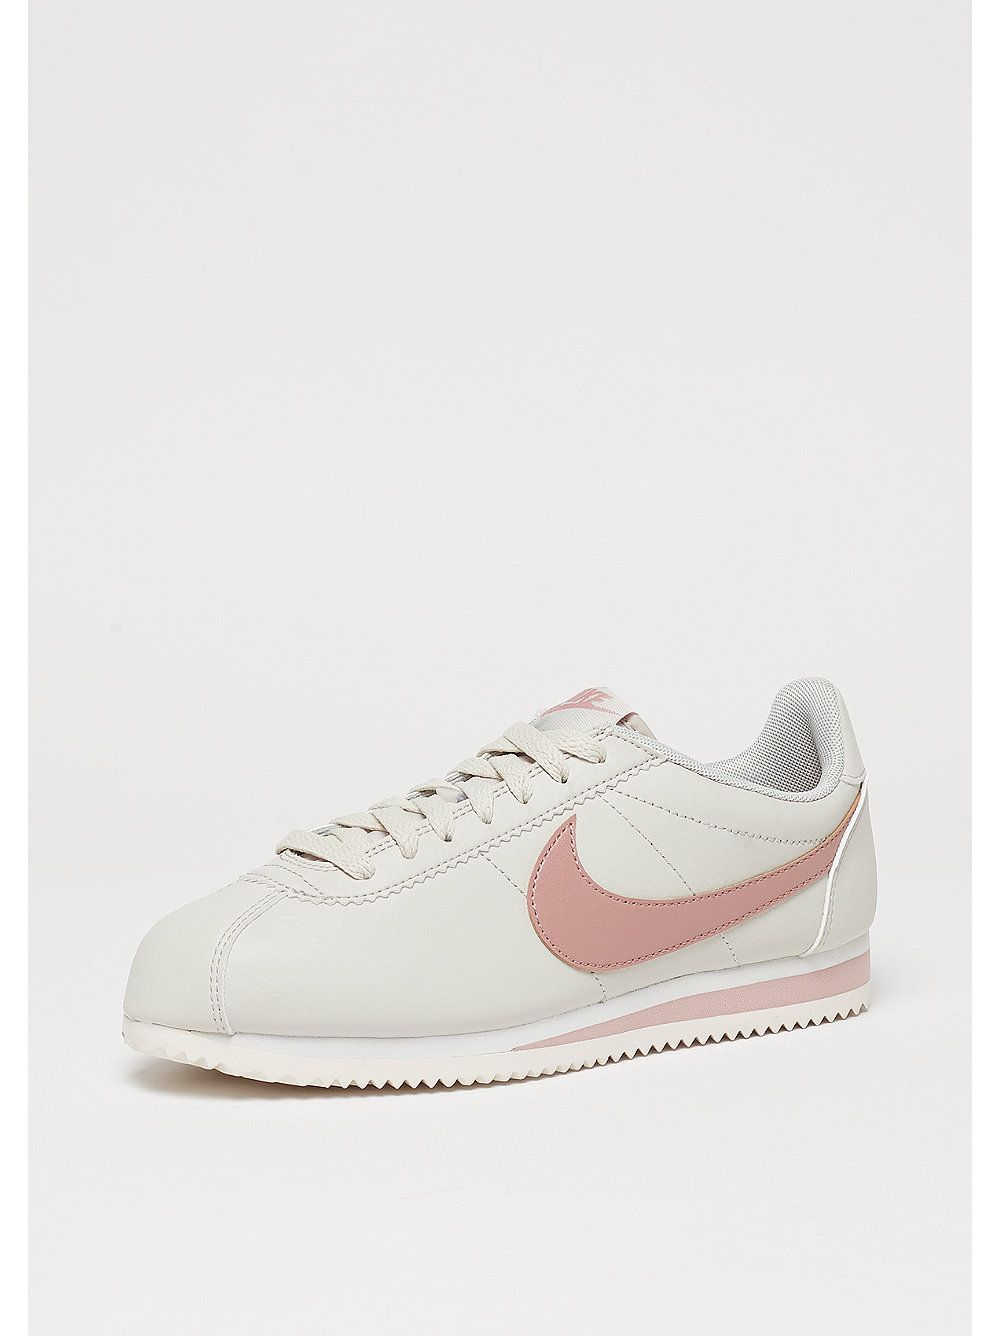 823340422 NIKE Wmns Classic Cortez Leather light bone particle pink summit white